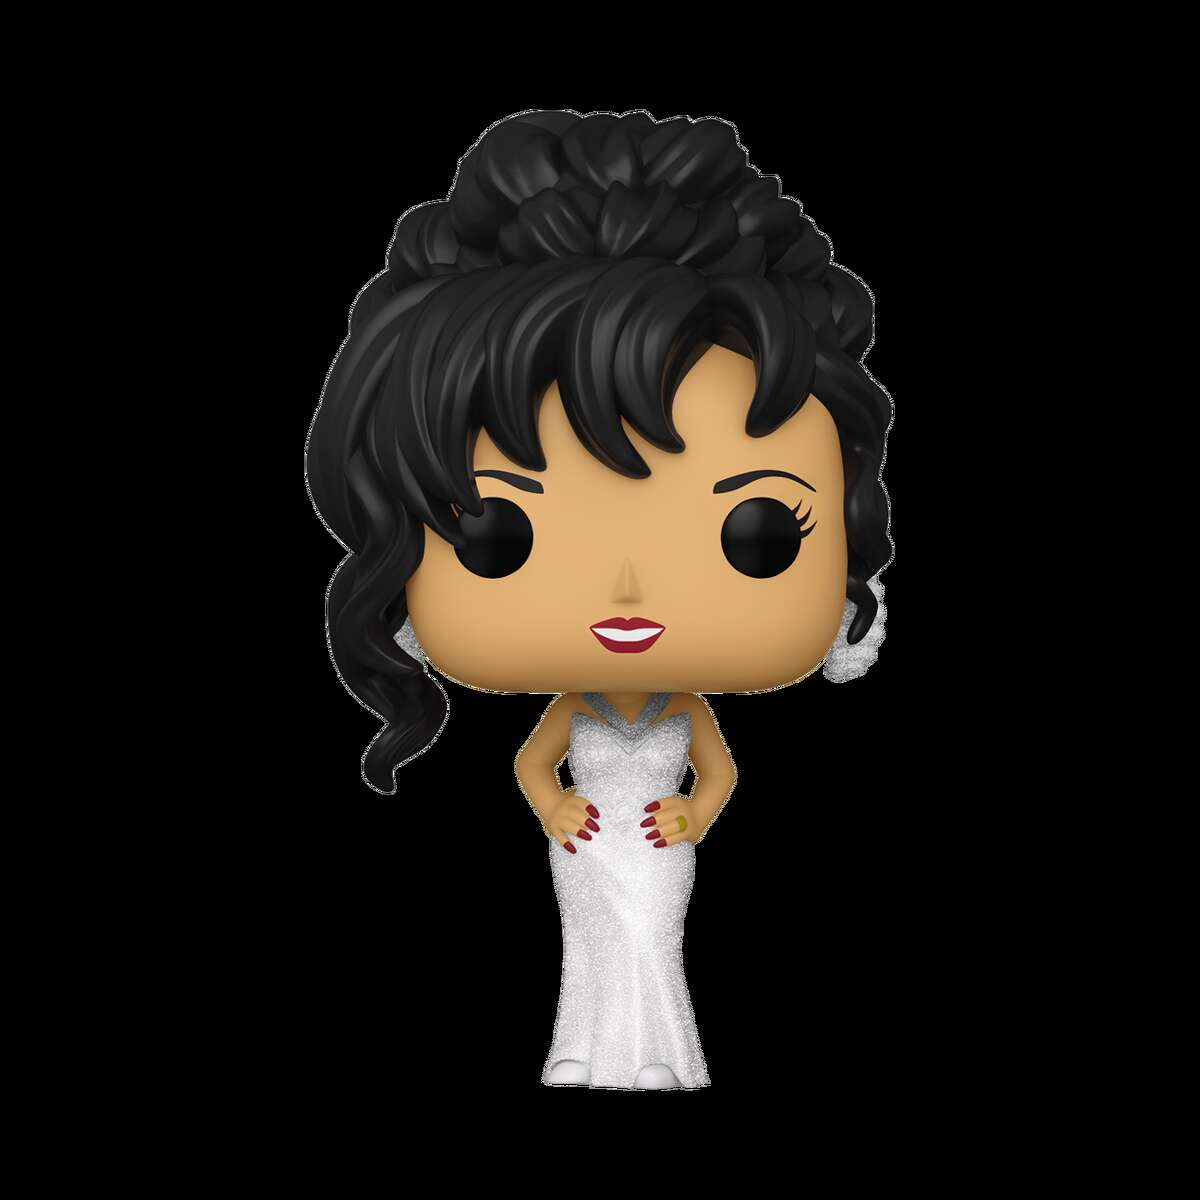 A version of Selena wearing the white dress she wore at the 36th Annual Grammy Awards held in New York in 1994 will be available at a later time, Funko said in the release.